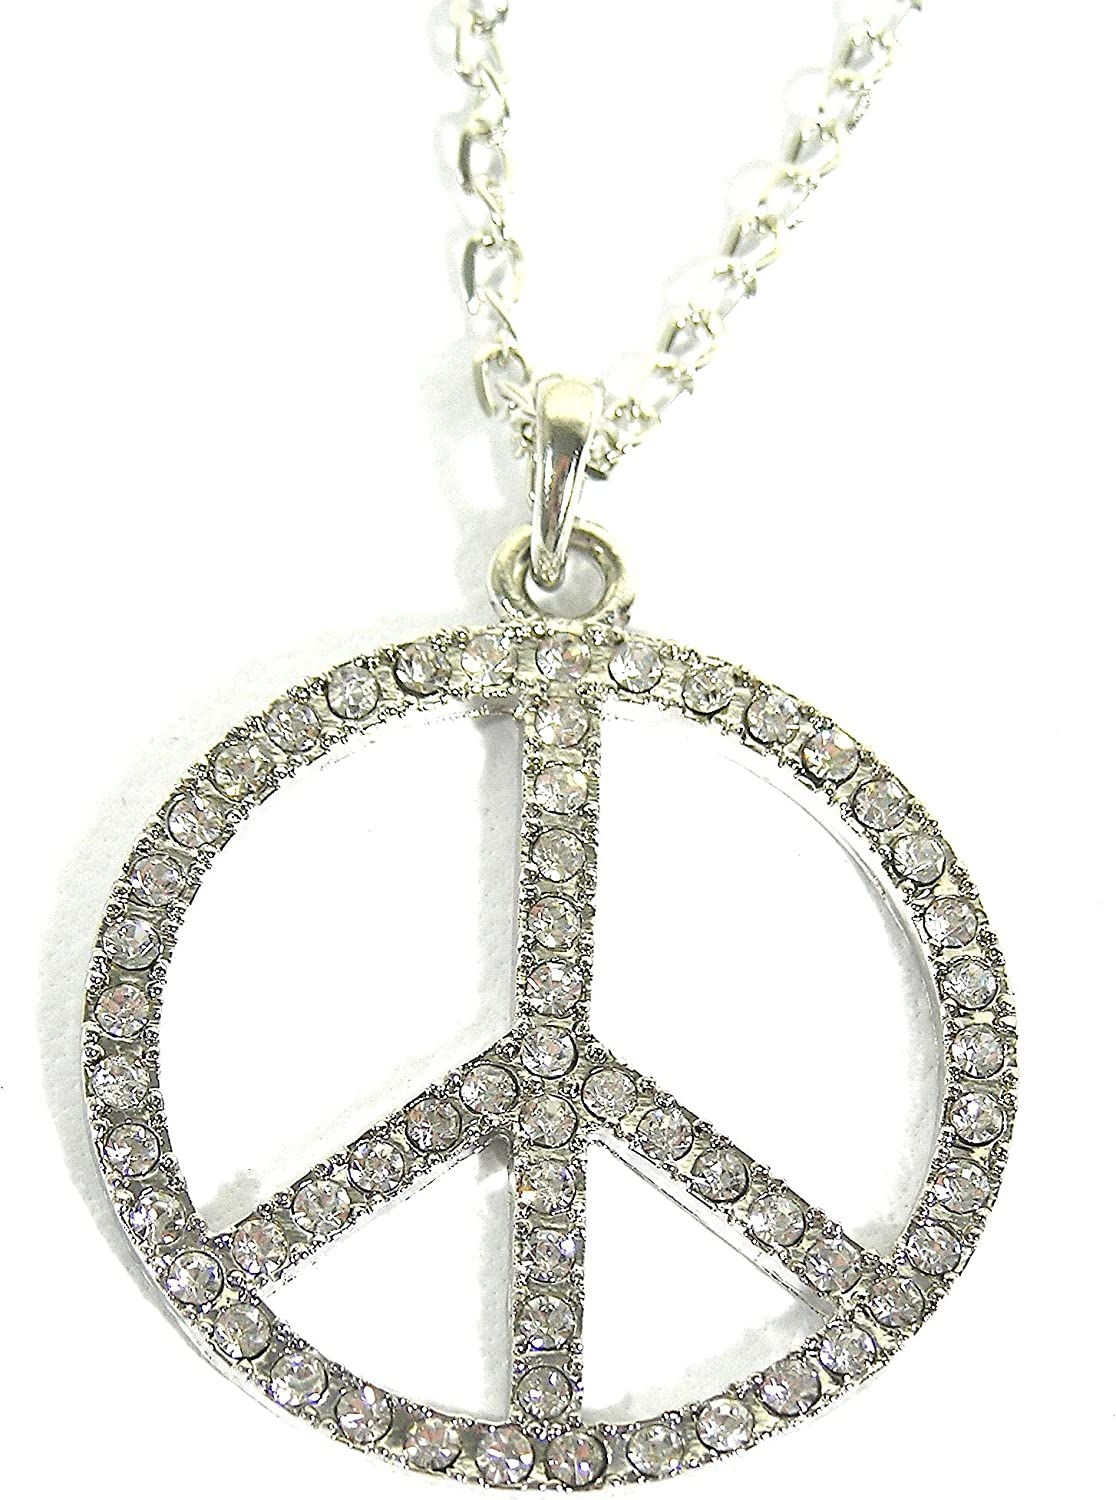 HIPPIE PEACE GLASS PENDANT NECKLACE SILVER FLOWER POWER GIFT BAG OR BOX